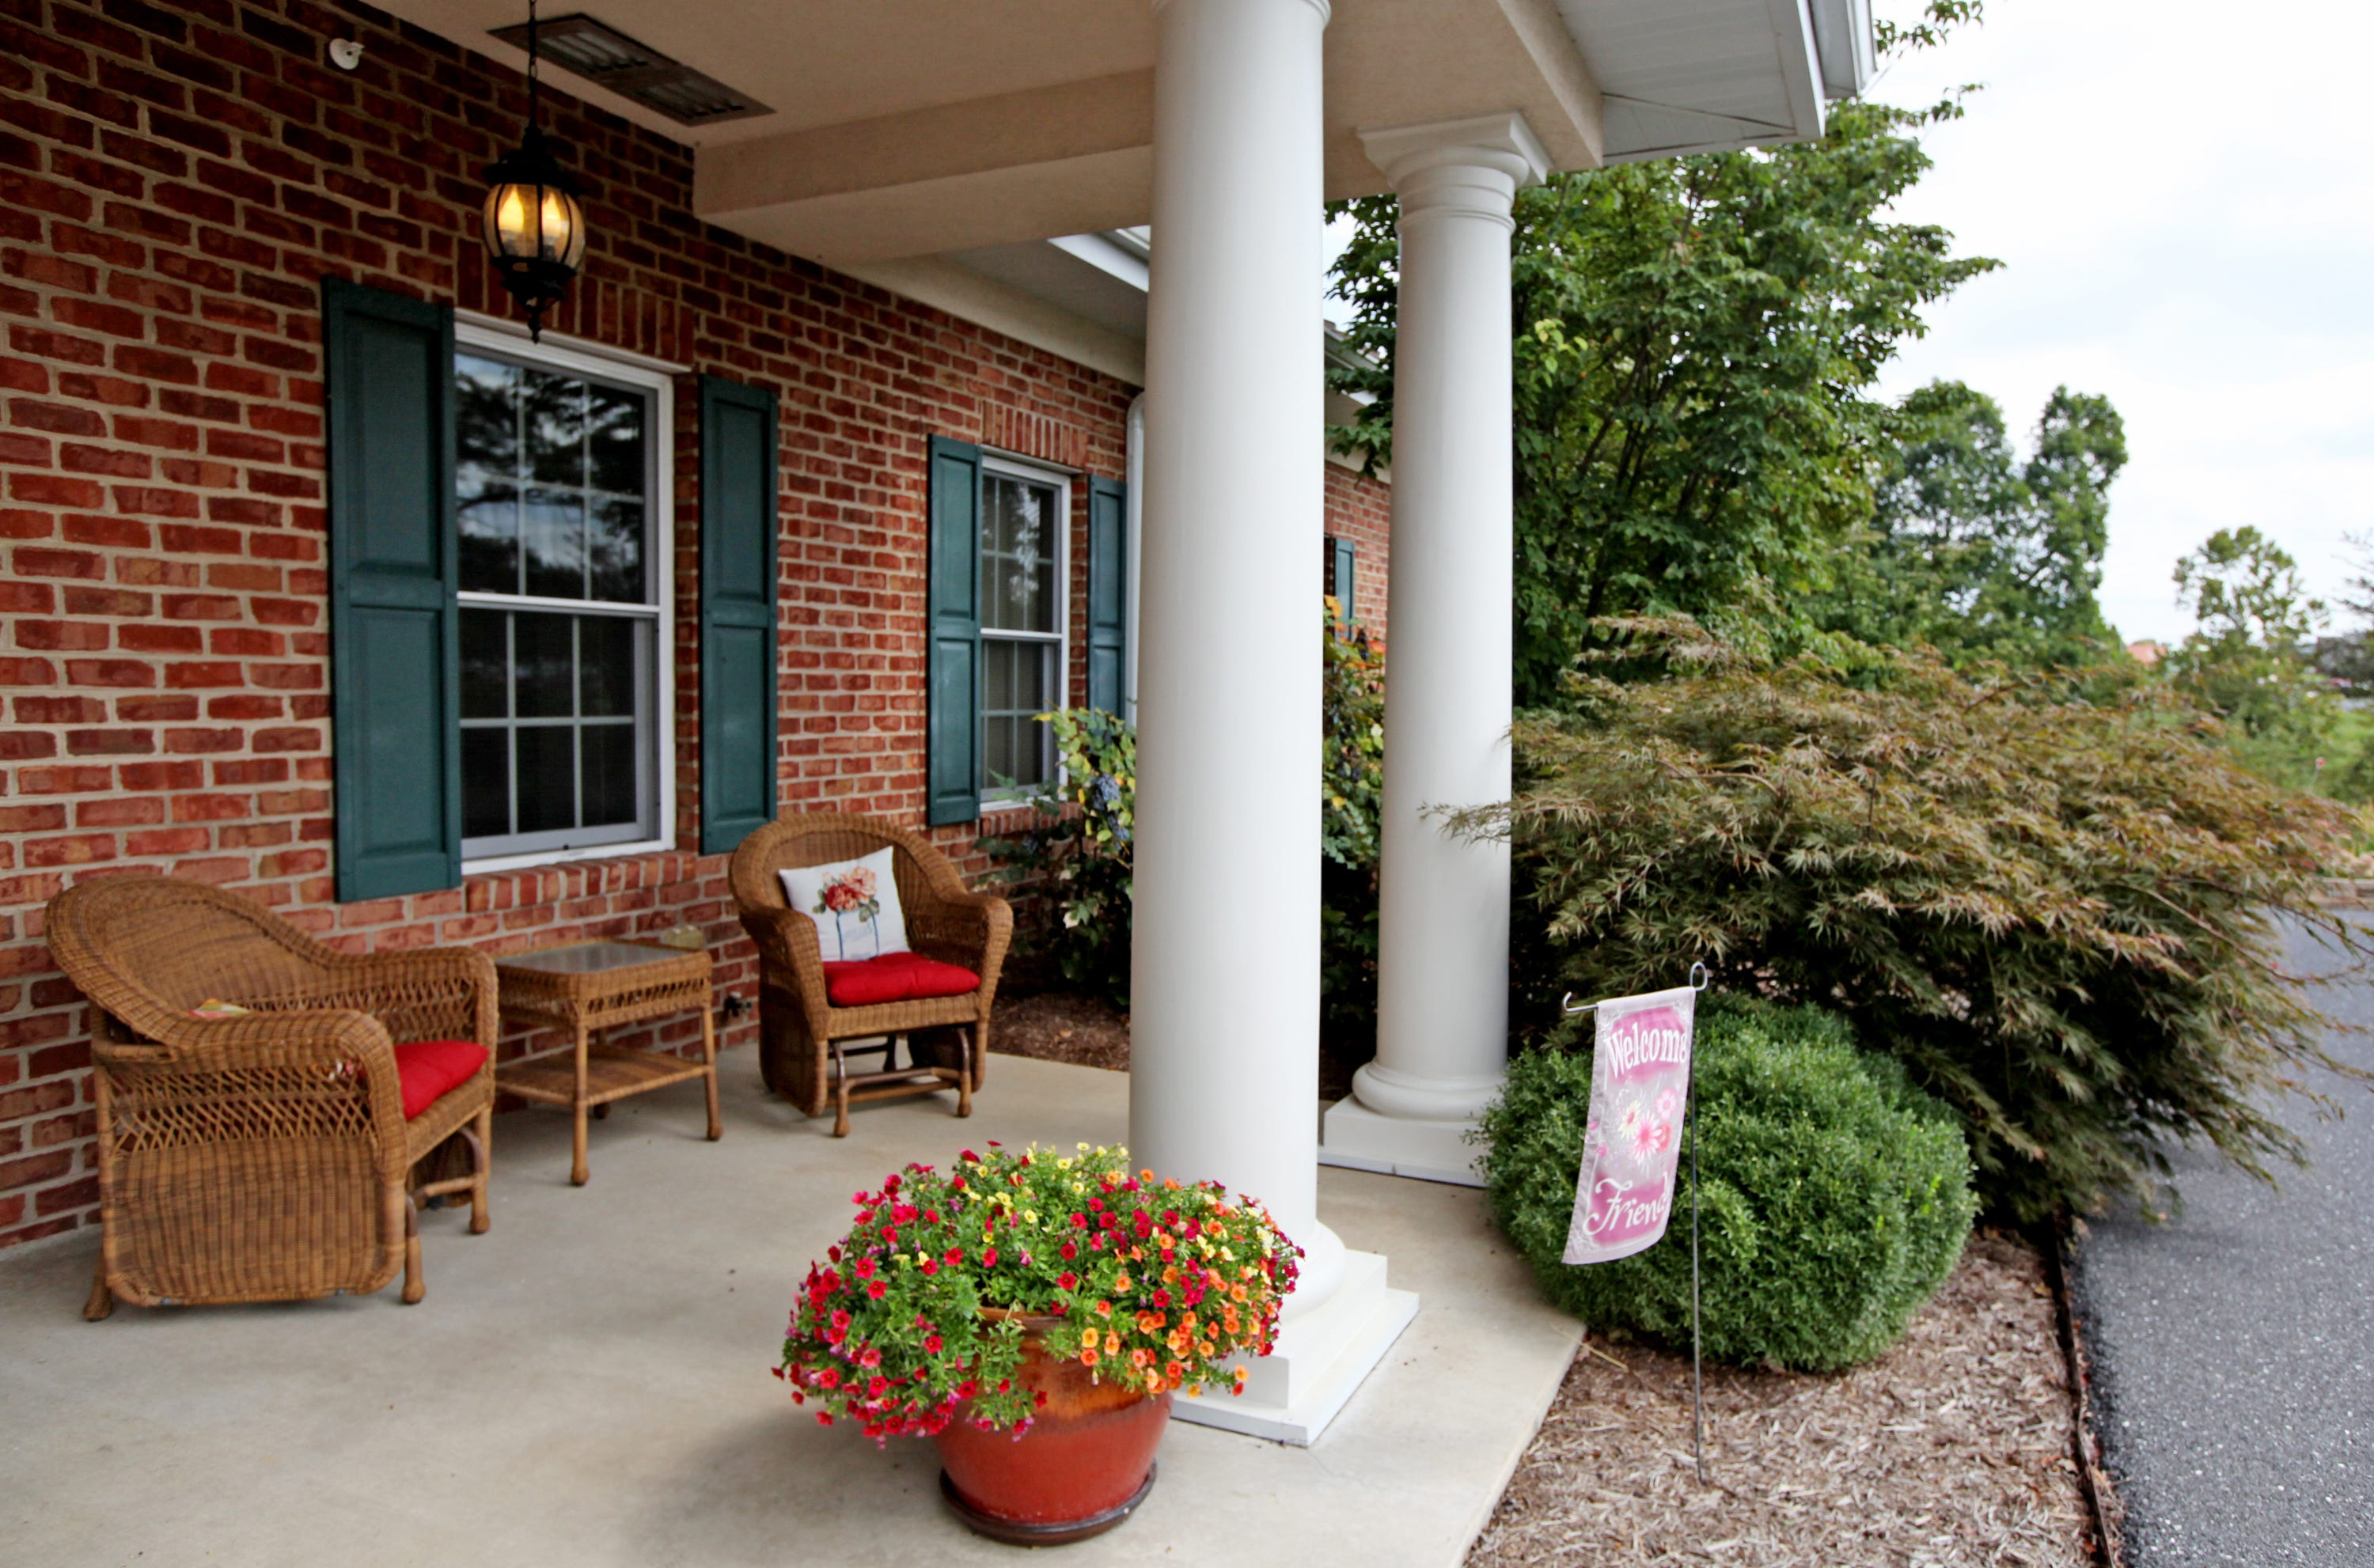 Augusta Health's Shenandoah House offers a home-like atmosphere to provide assistance for patients during their end-of-life care.